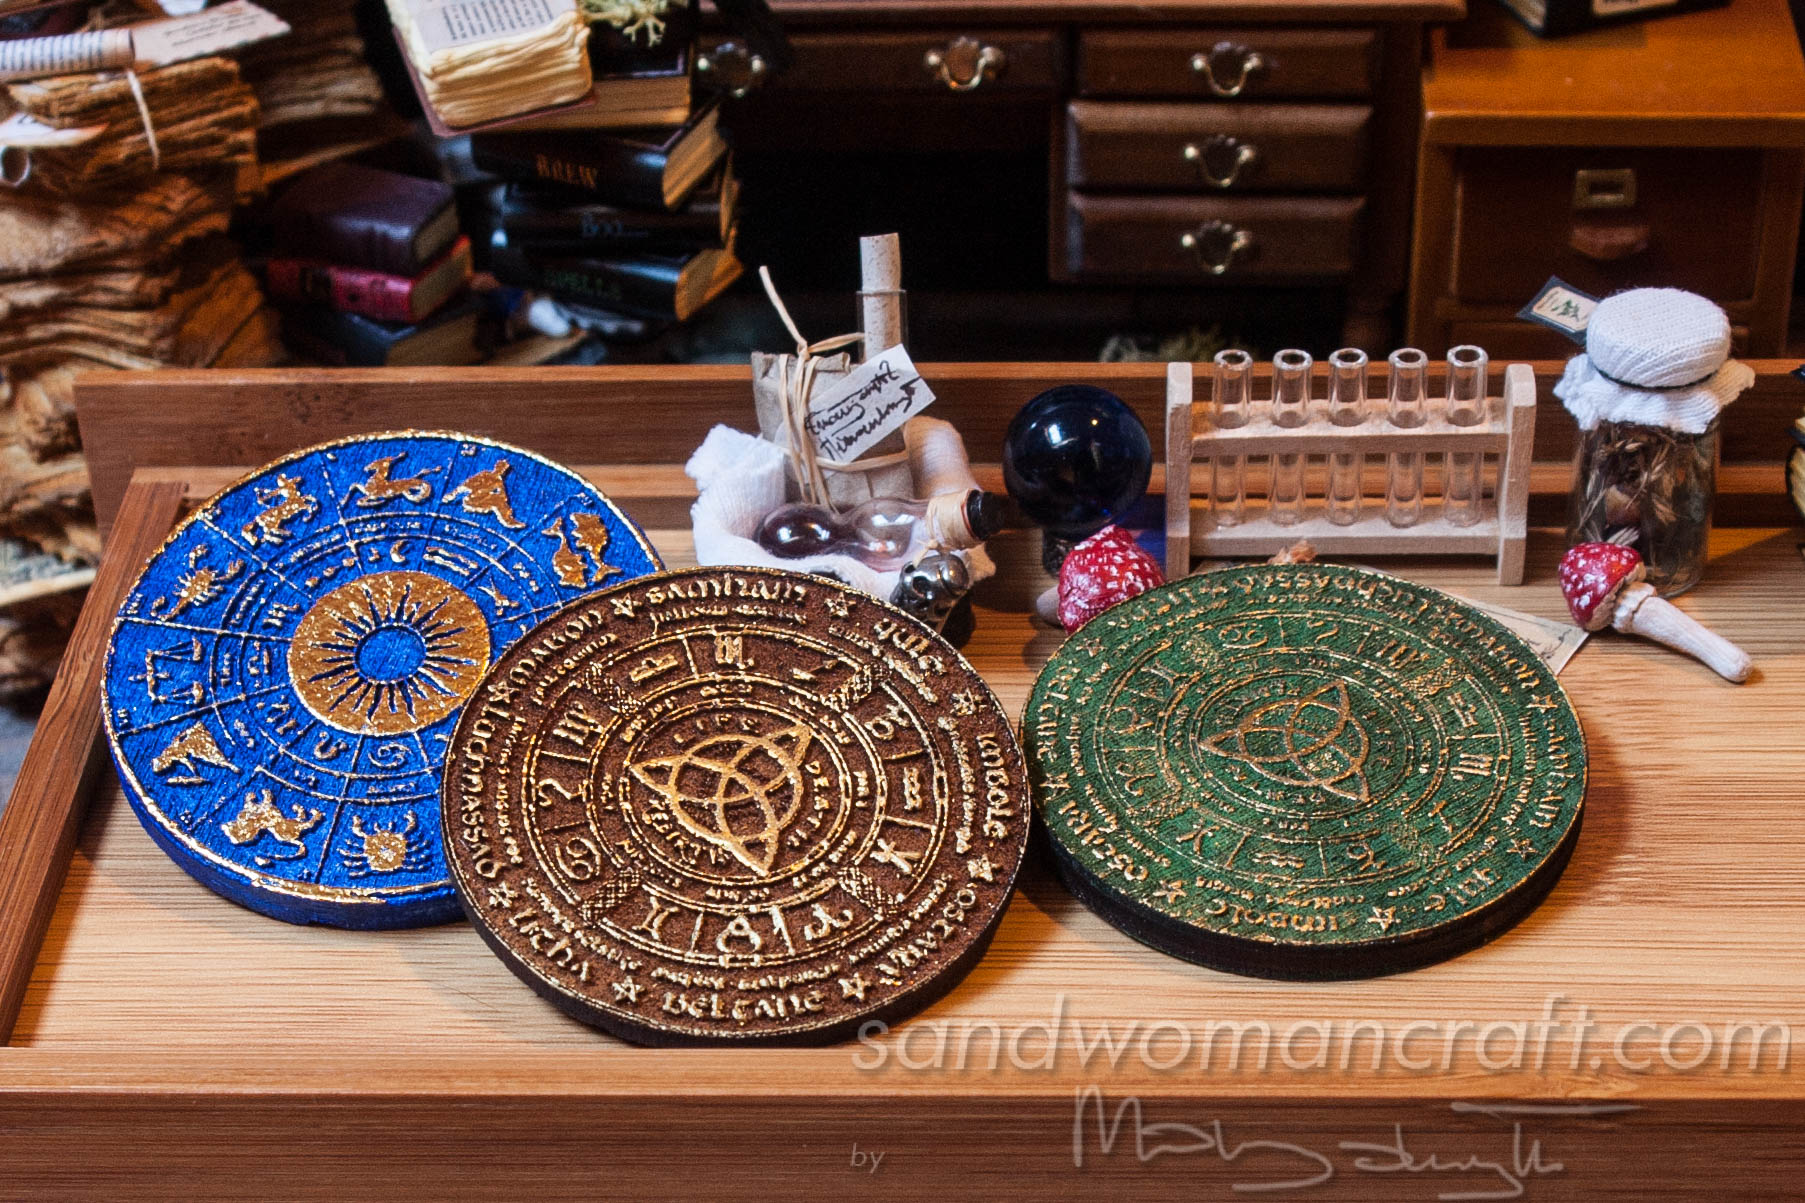 Celtic Wheels Of the year plus Zodiac Wheel